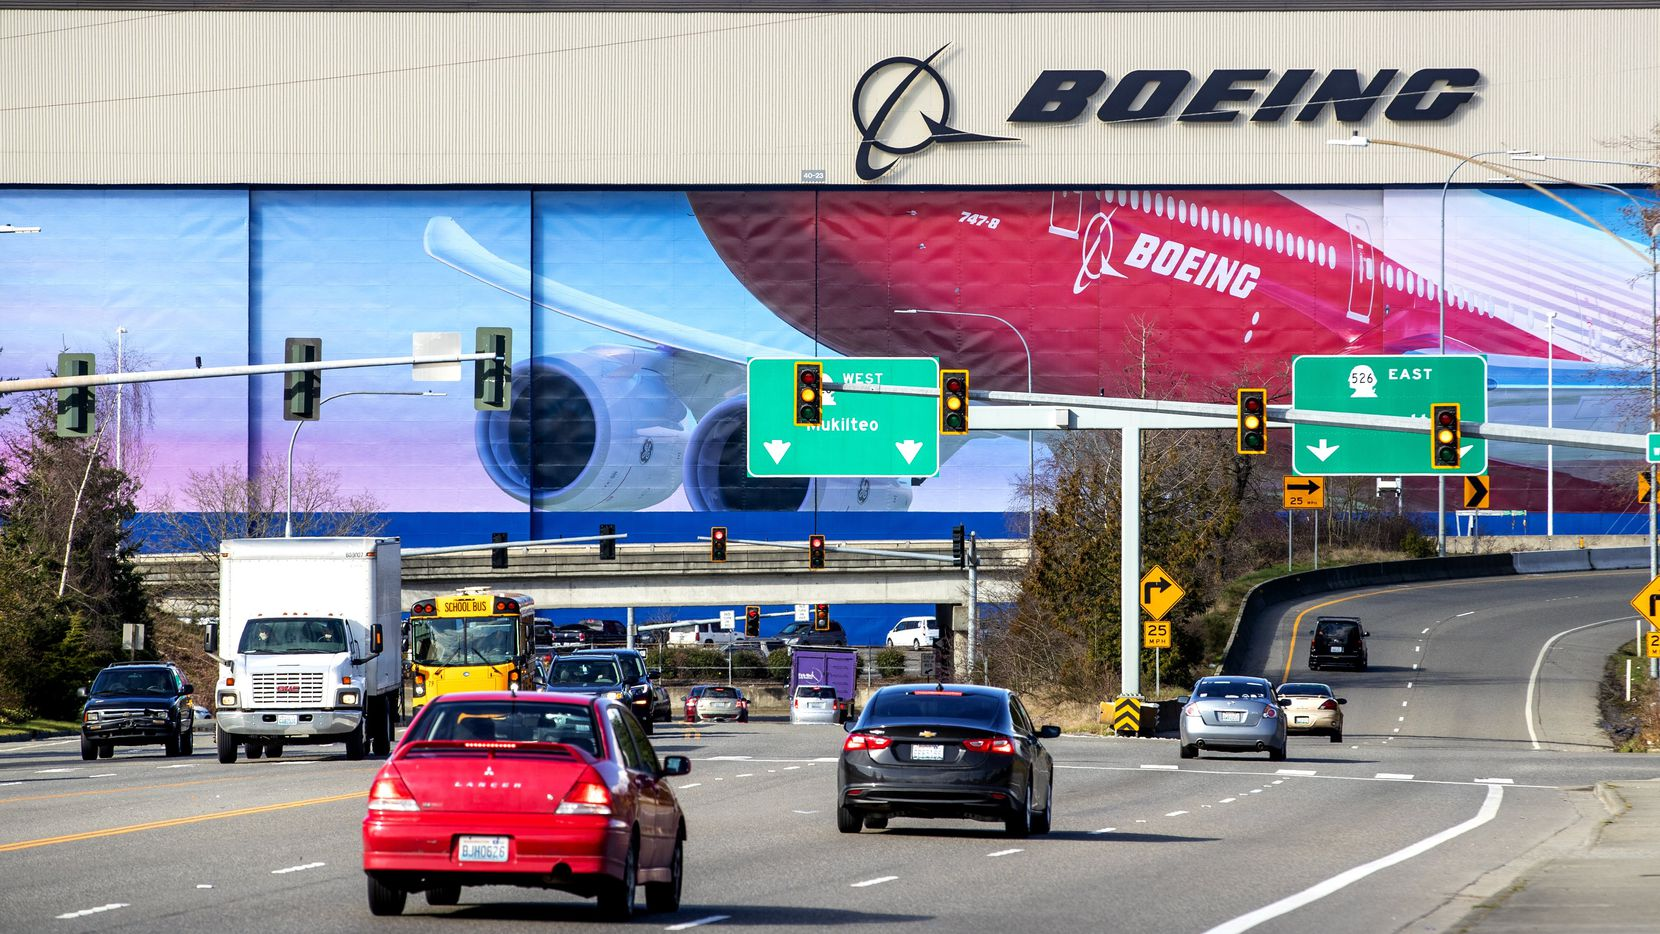 Boeing's Everett factory, known as the largest manufacturing building in the world, now has five confirmed cases of COVID-19, the disease caused by the new coronavirus.